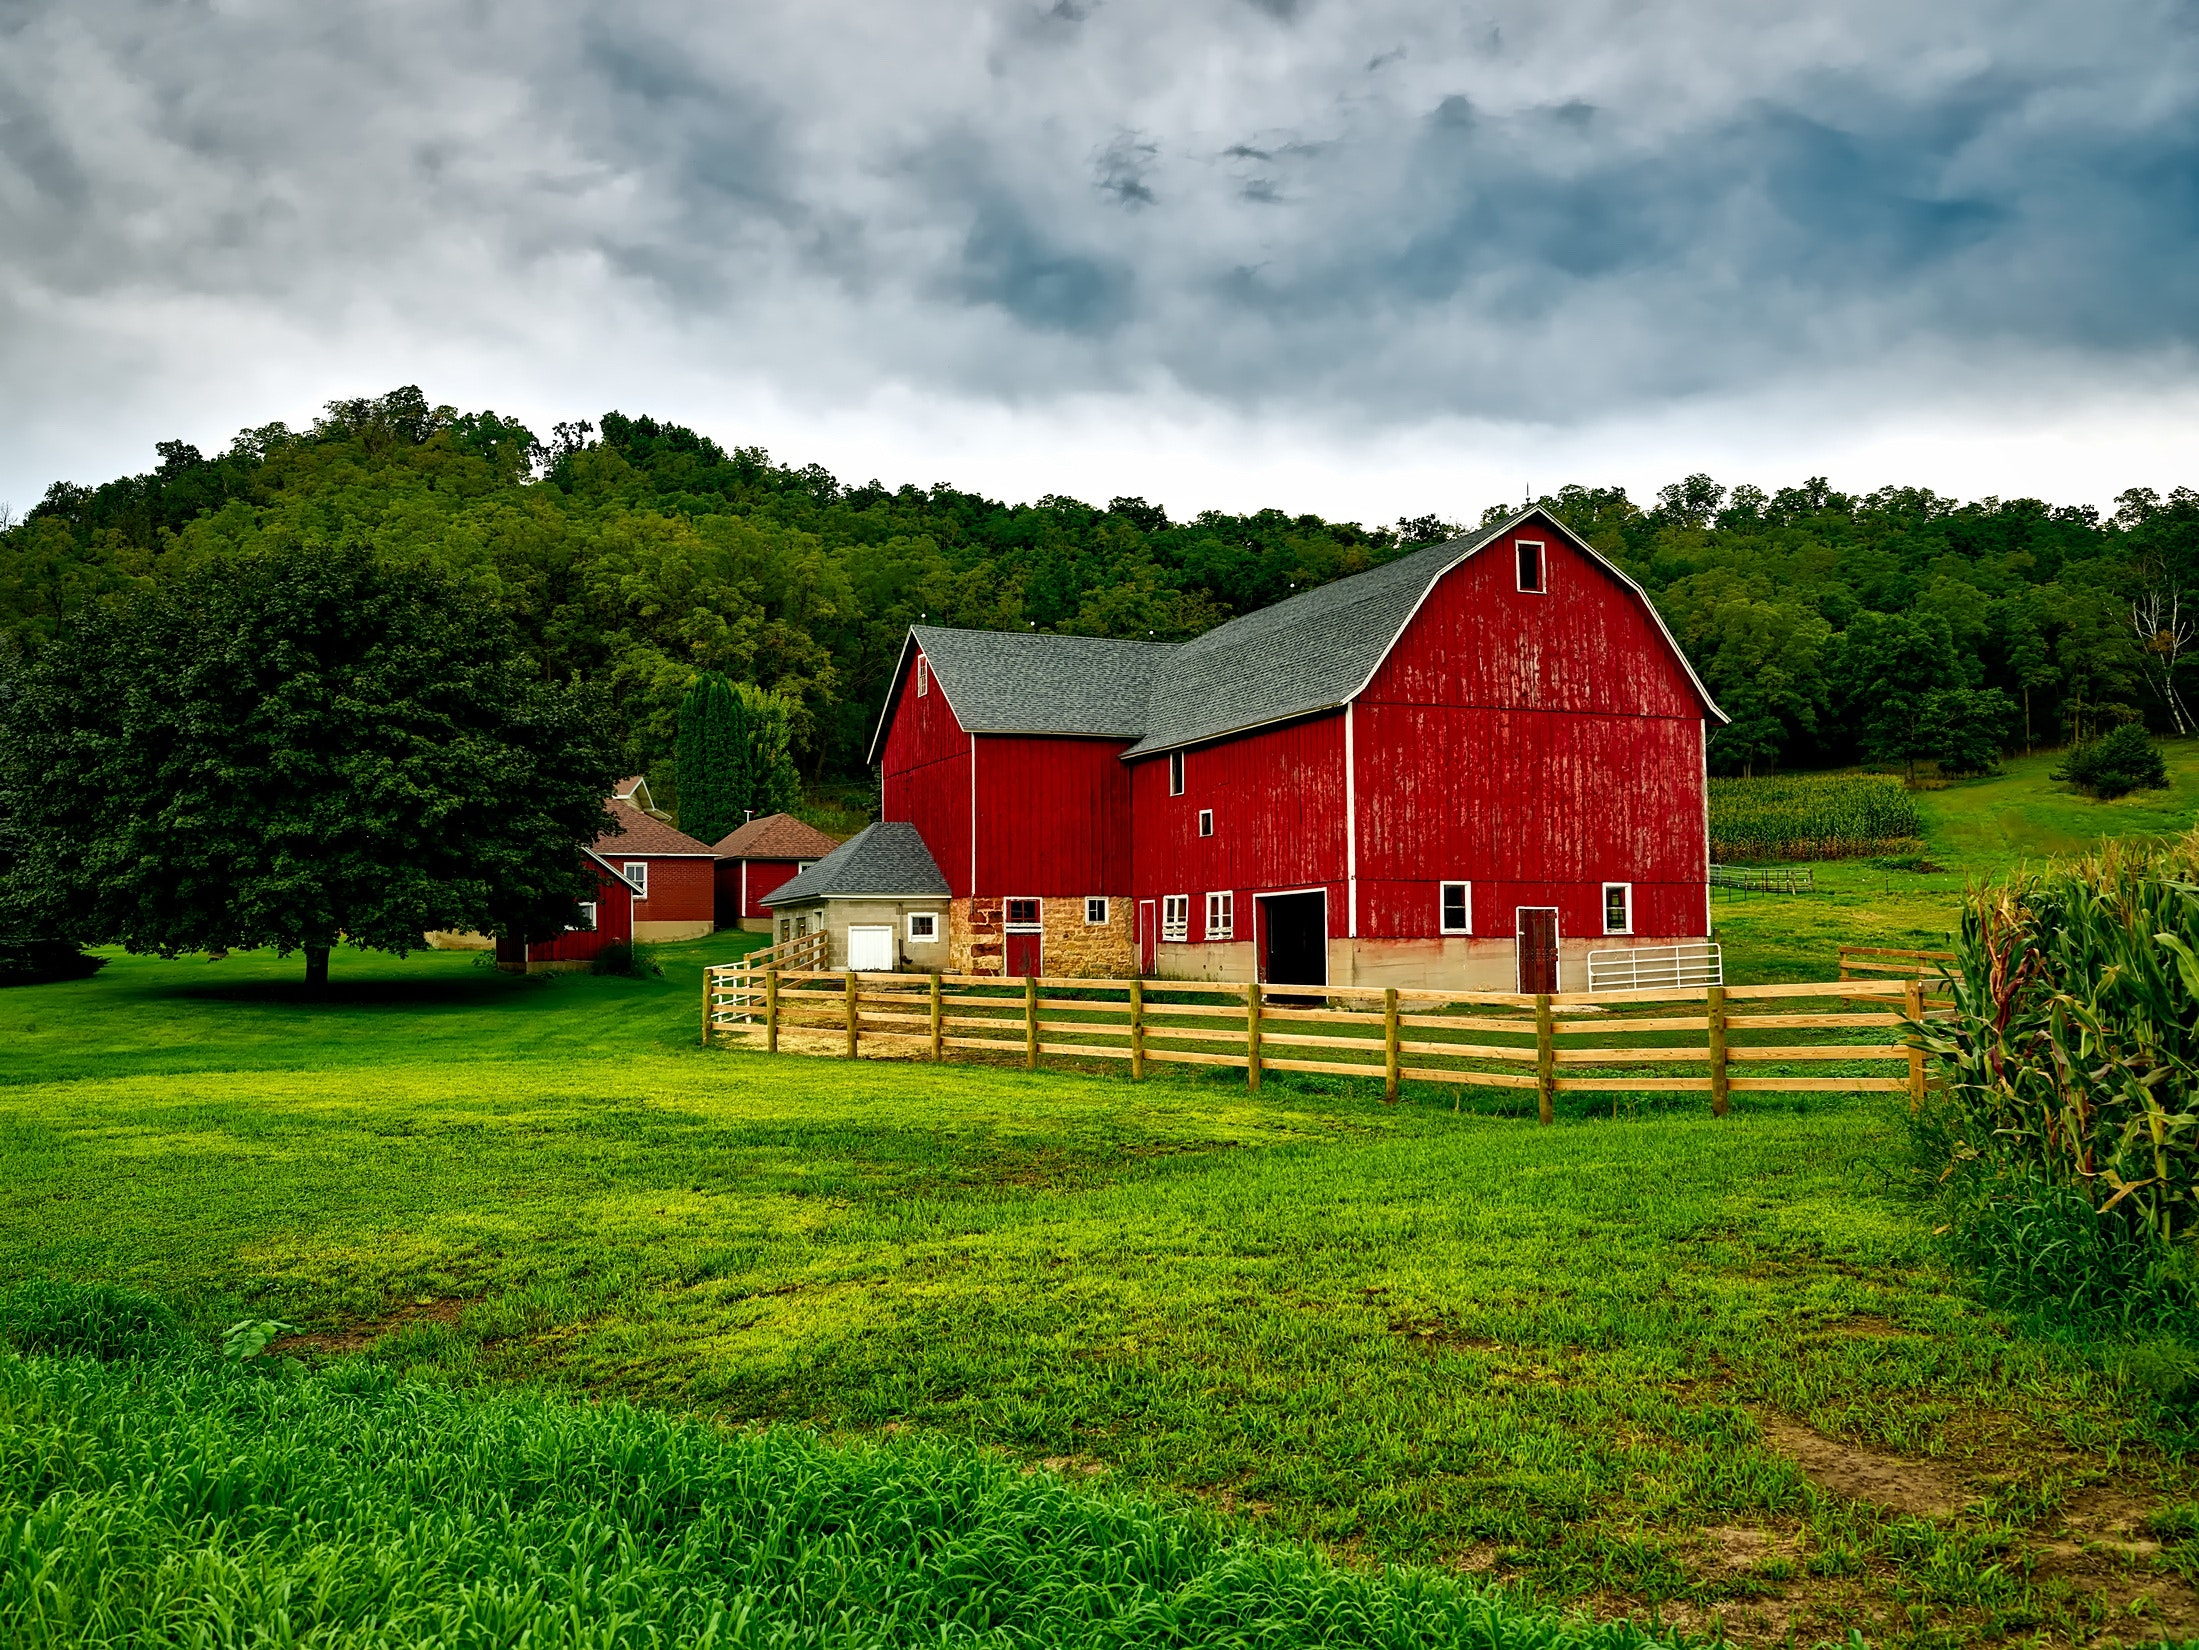 How to Start a Small Farm? – A Guide for the Beginners